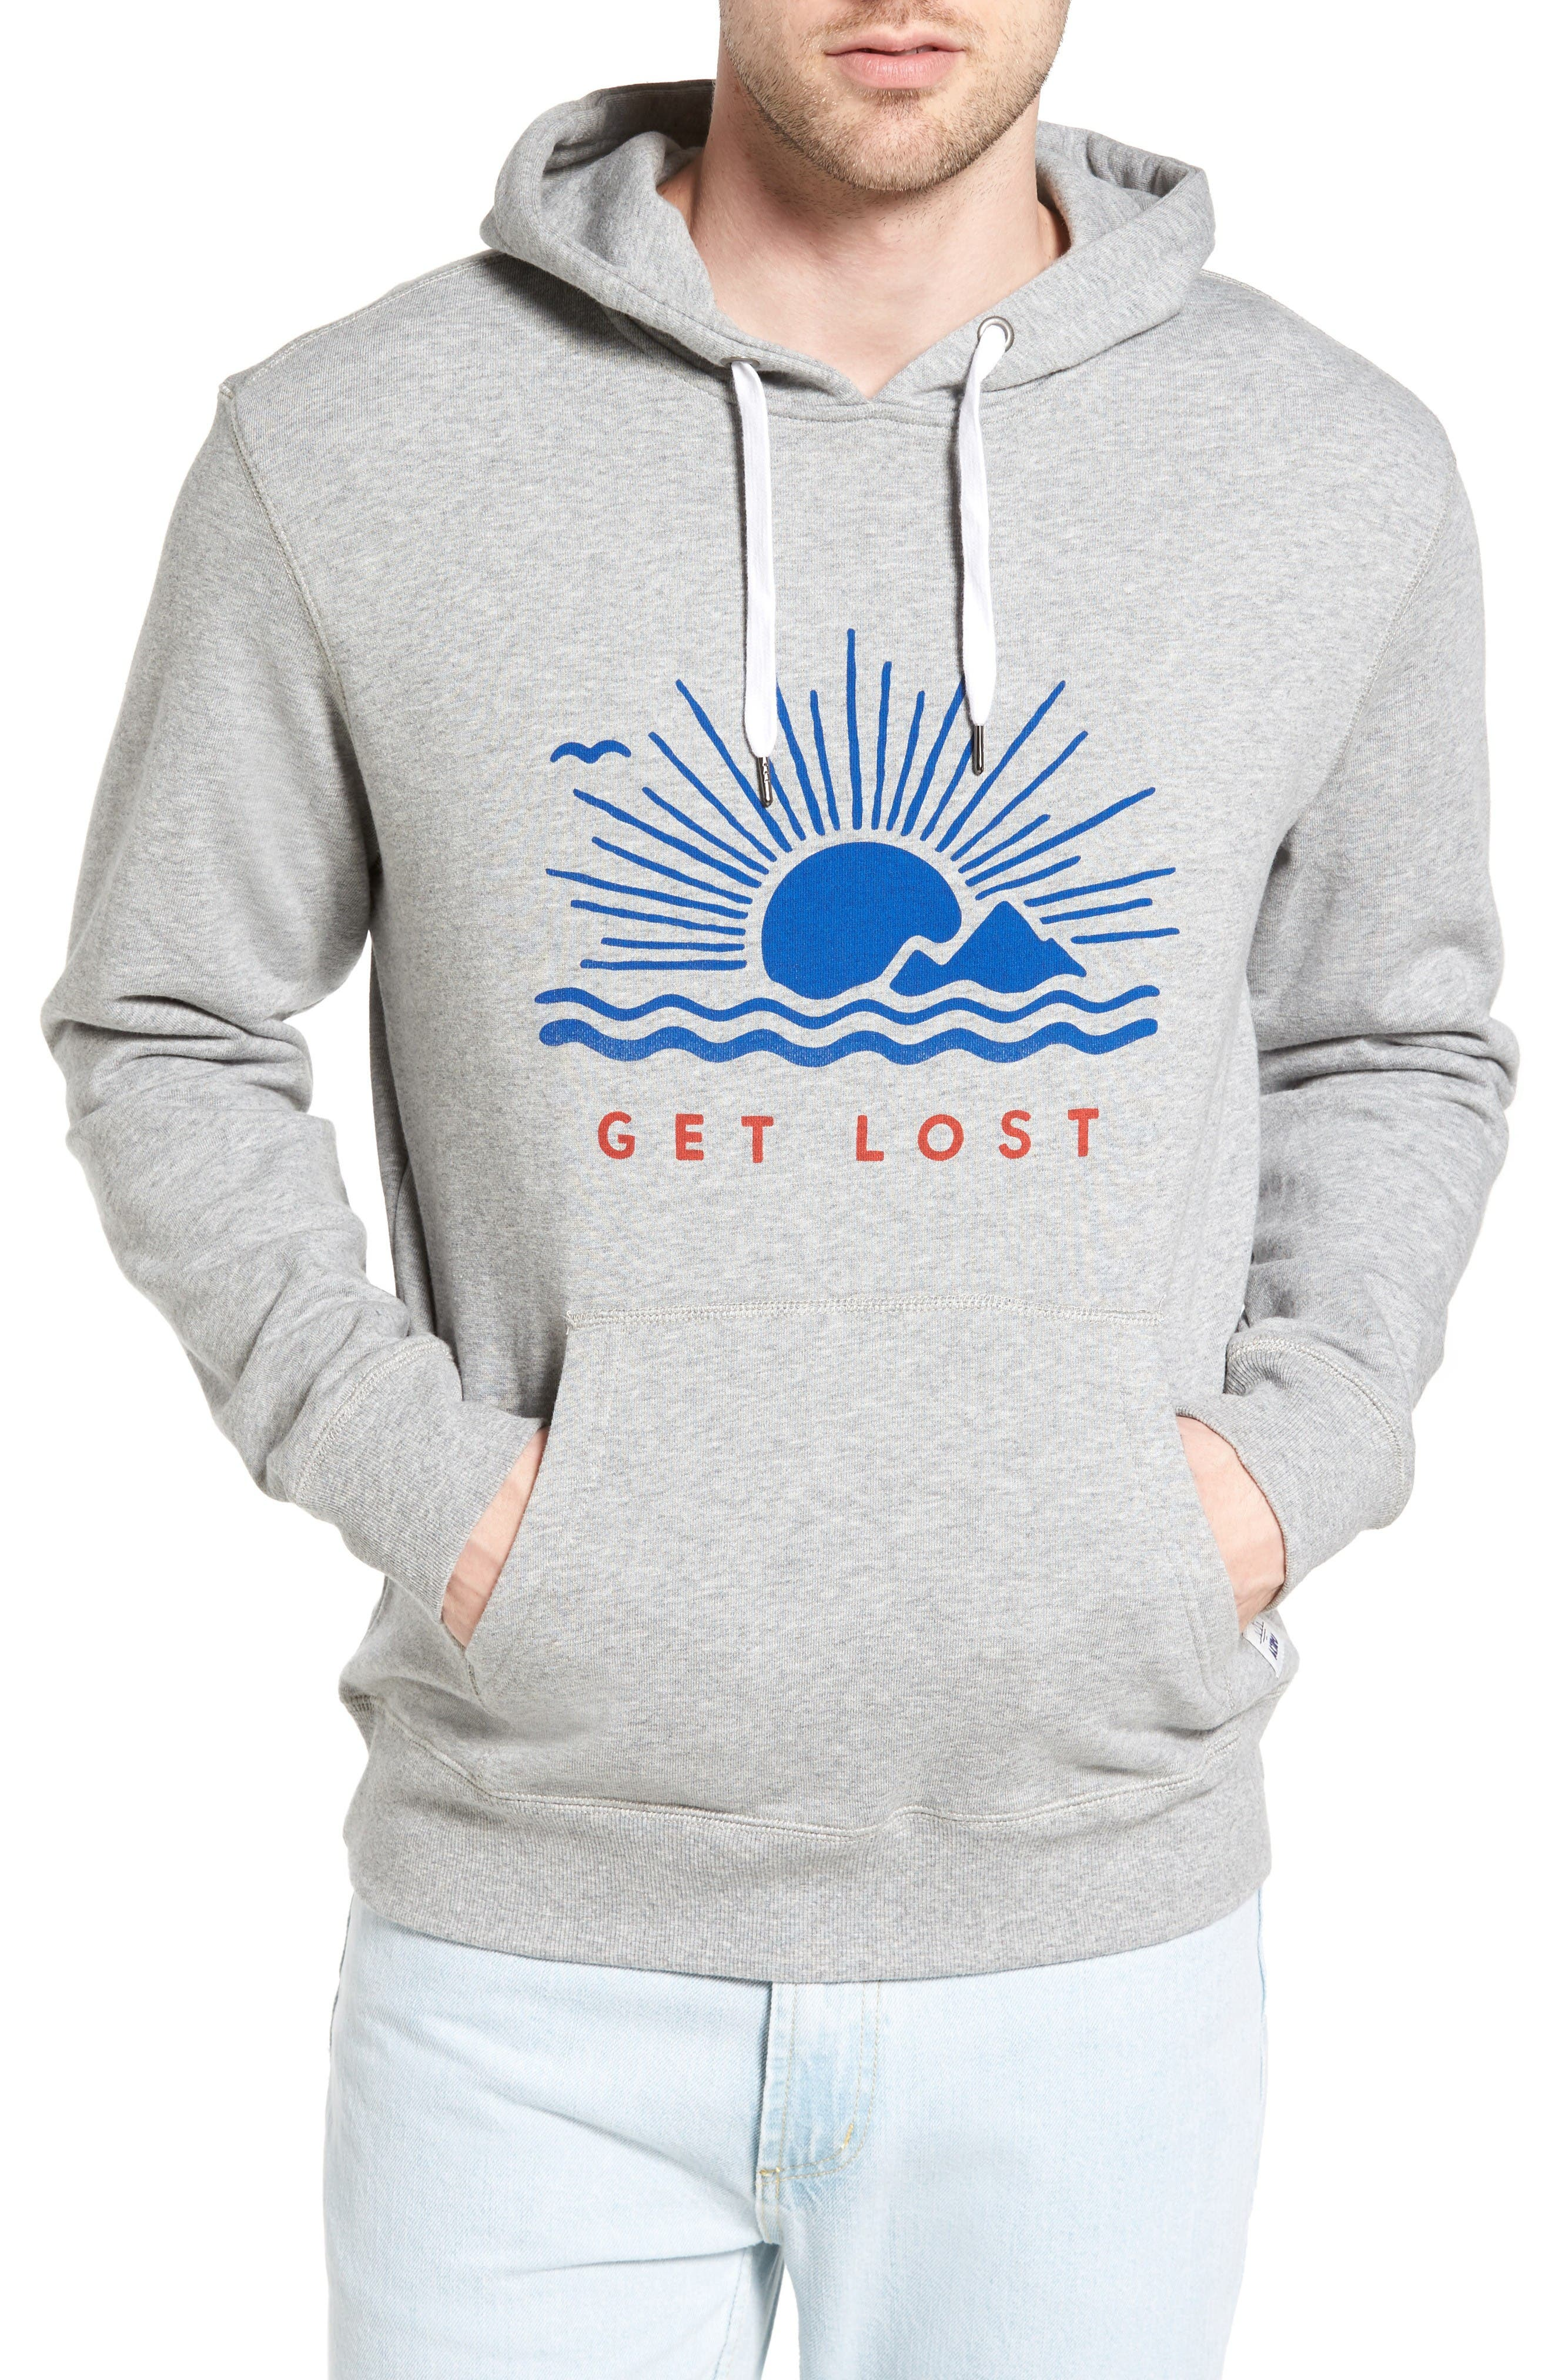 Alternate Image 1 Selected - Altru Get Lost French Terry Hoodie